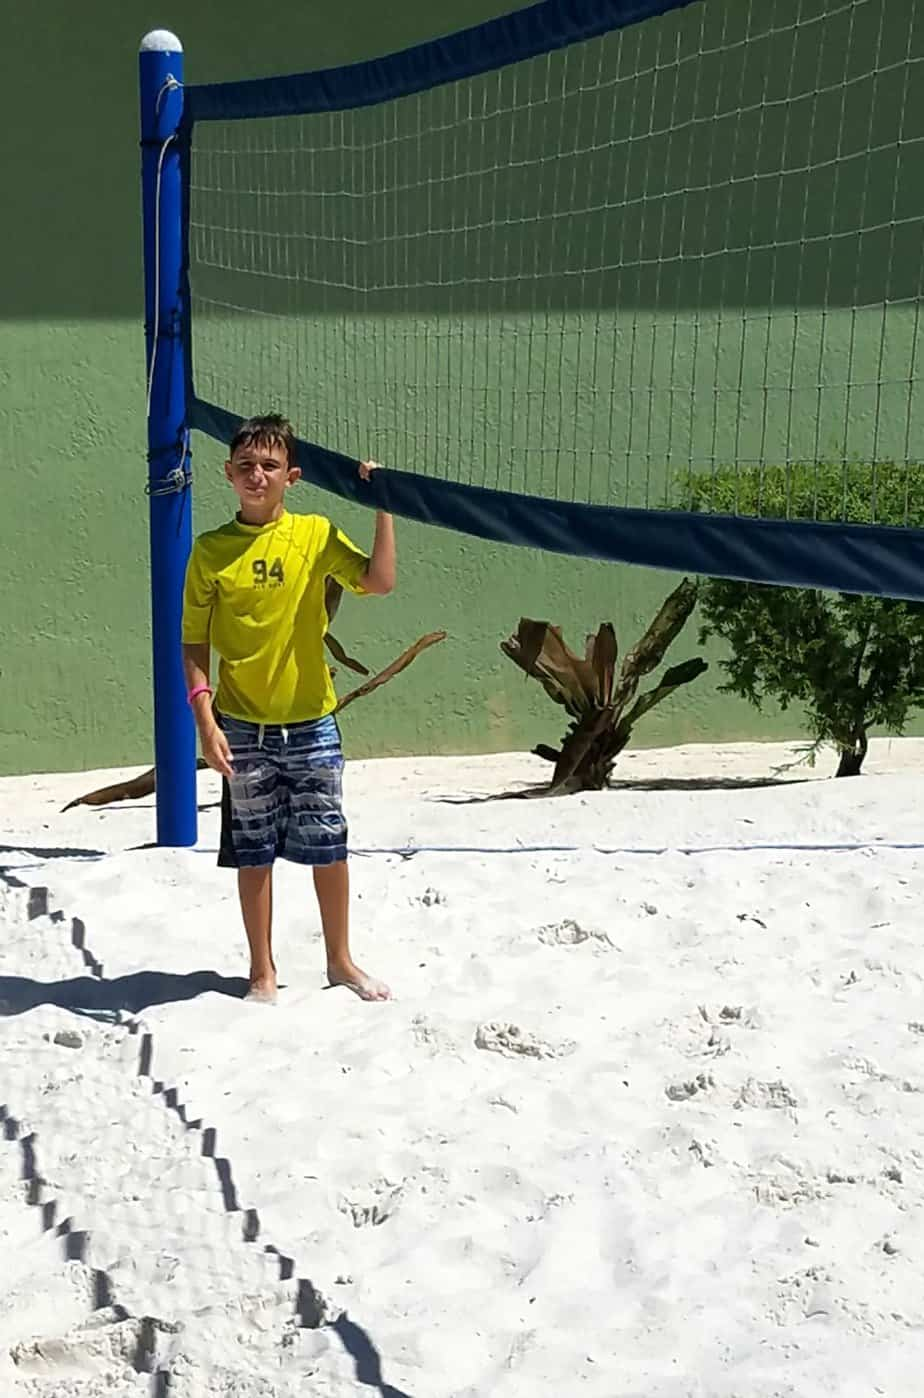 Hawks Cay Family Vacation Volleyball Court